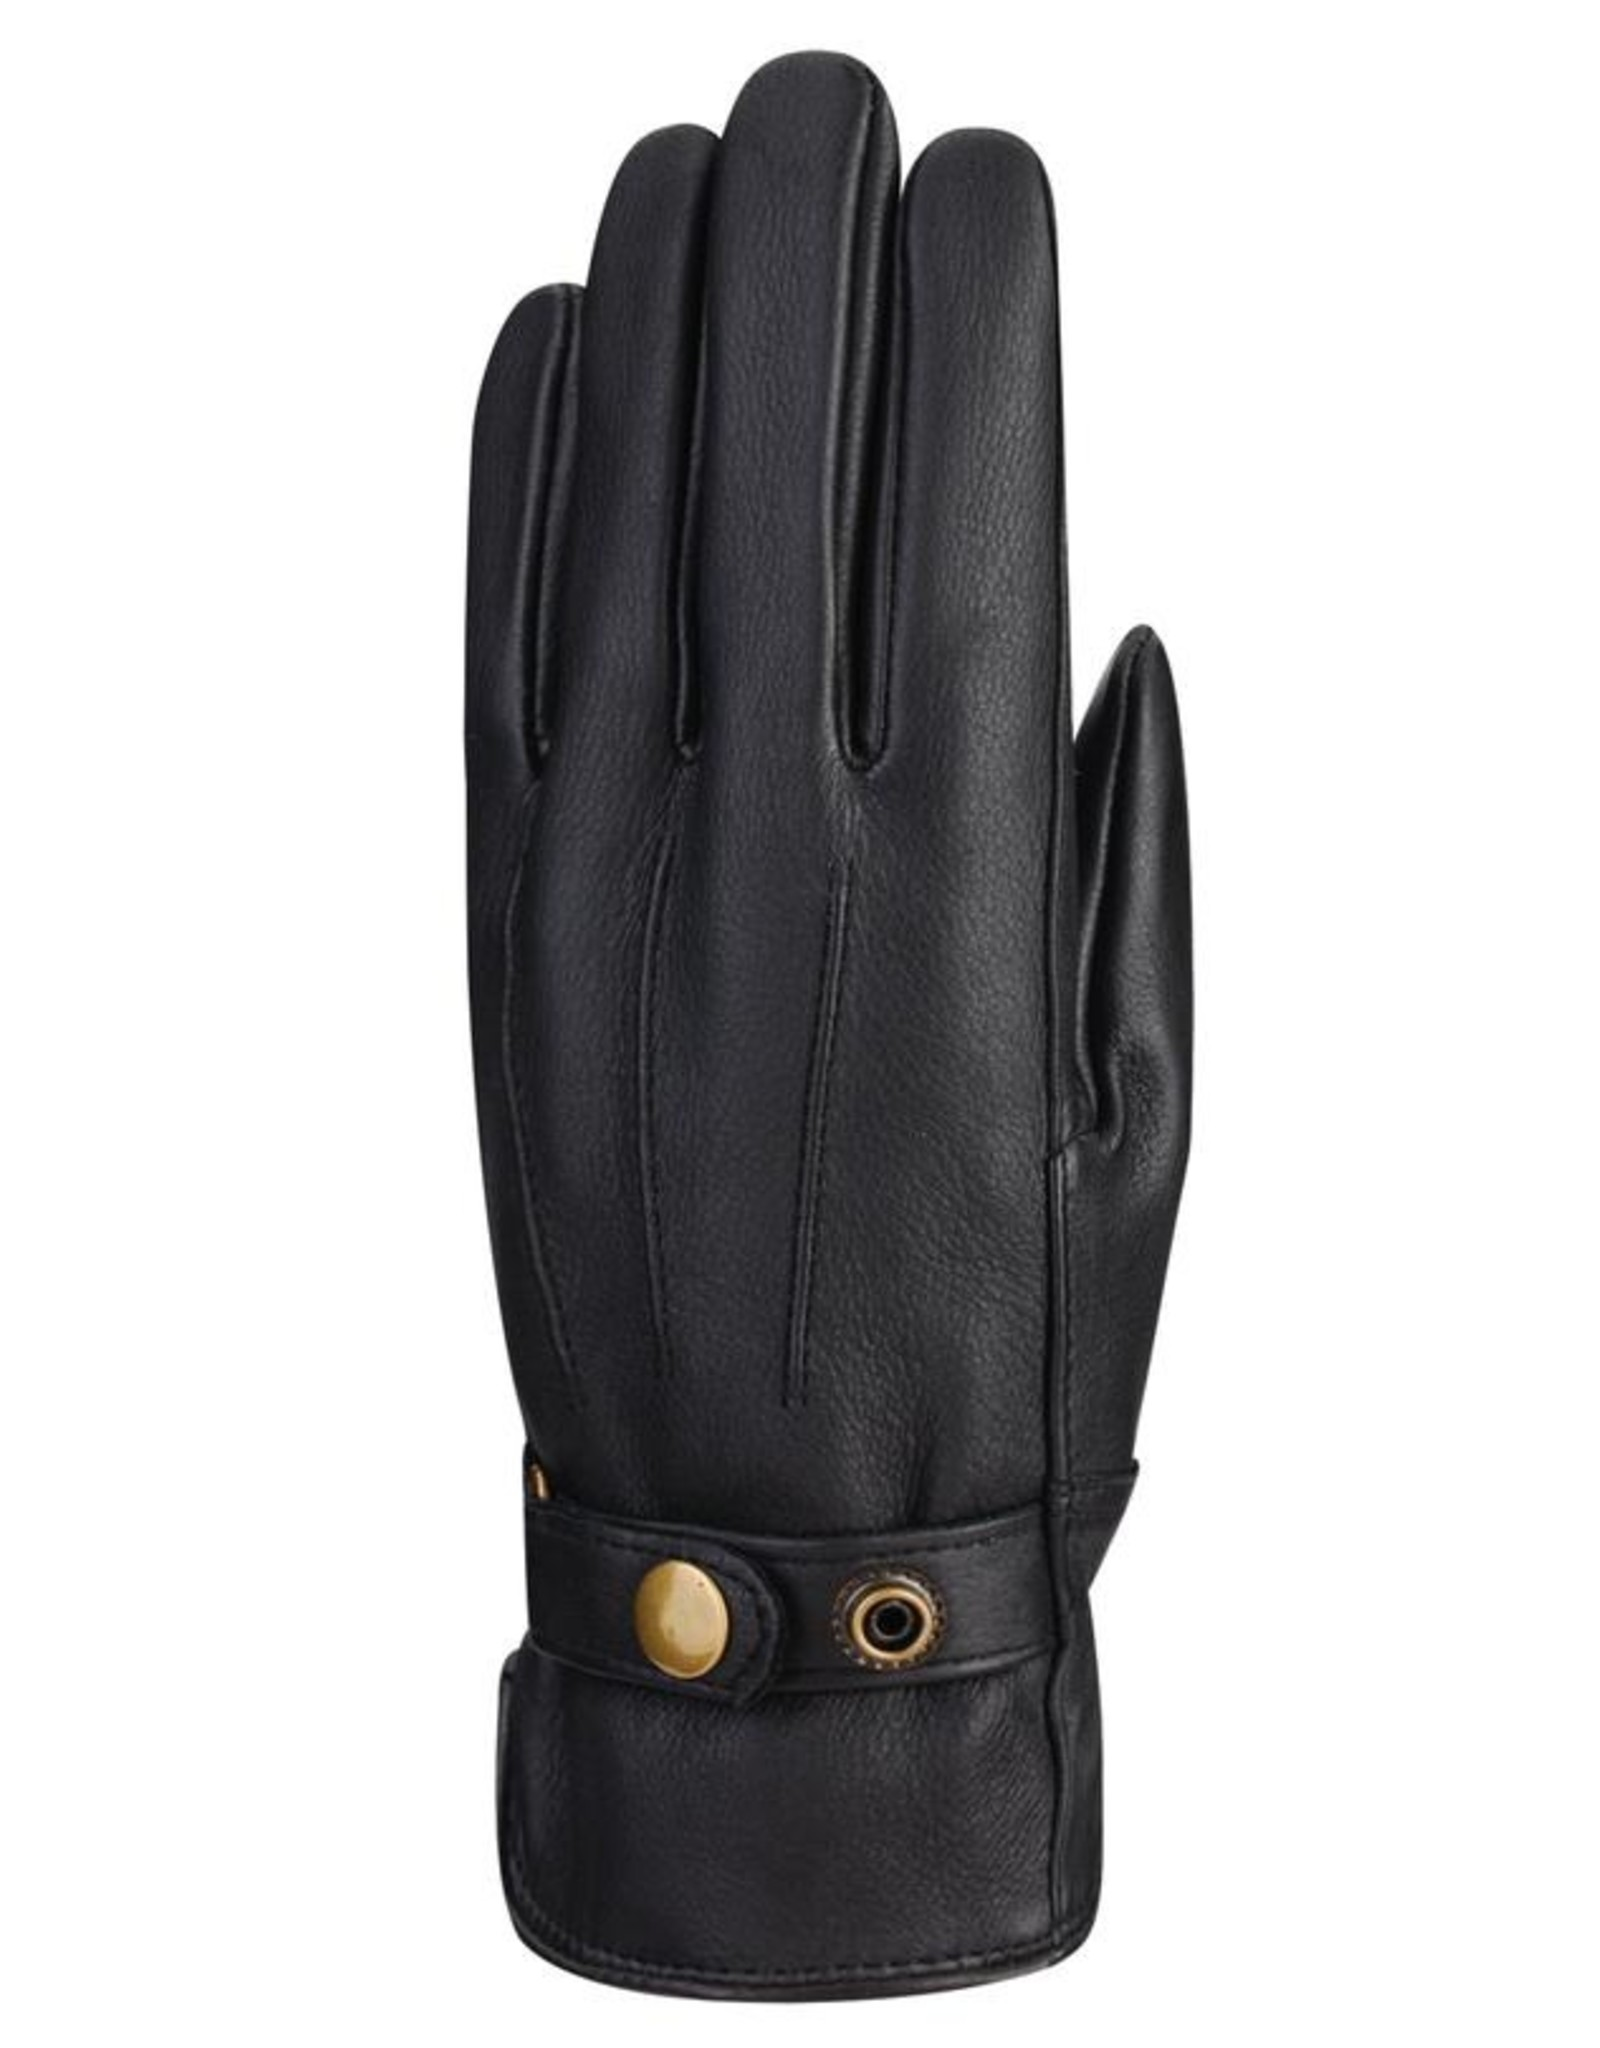 Auclair Auclair 6G514 Brody Paris Gloves - 2 Colors